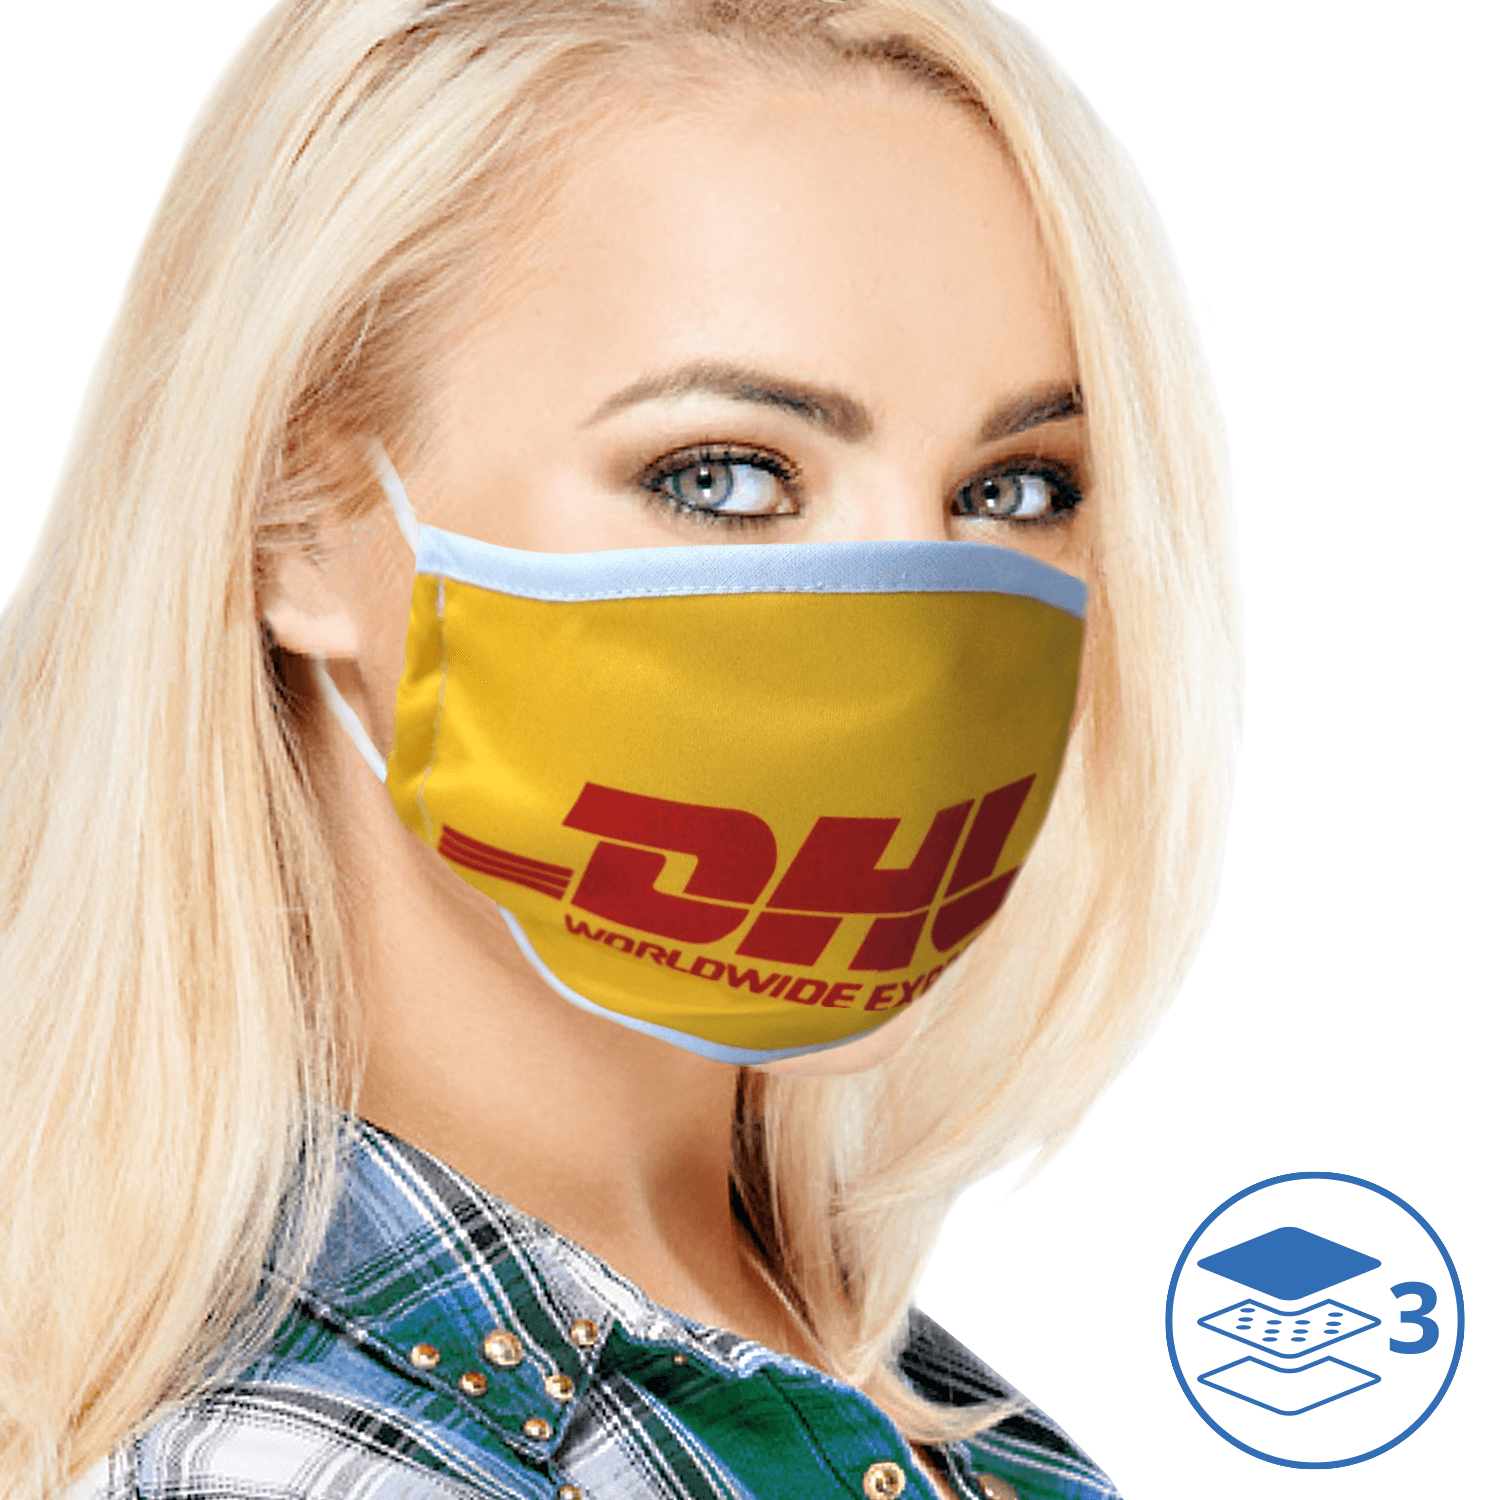 Branded Reusable Face Masks with KN95 Filter